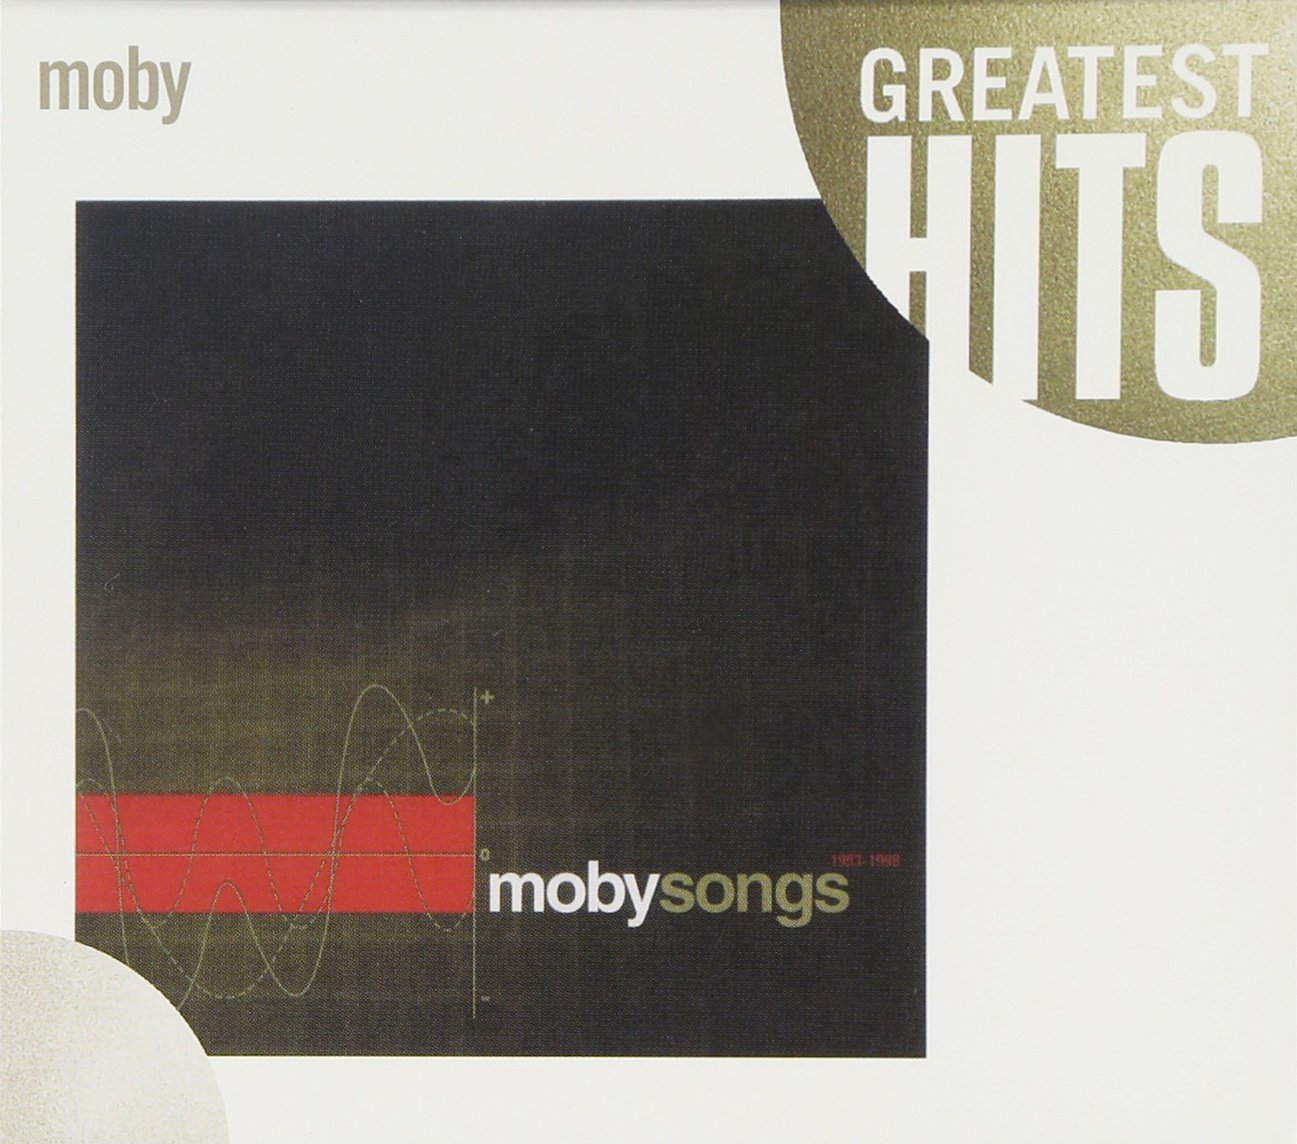 Moby popular songs